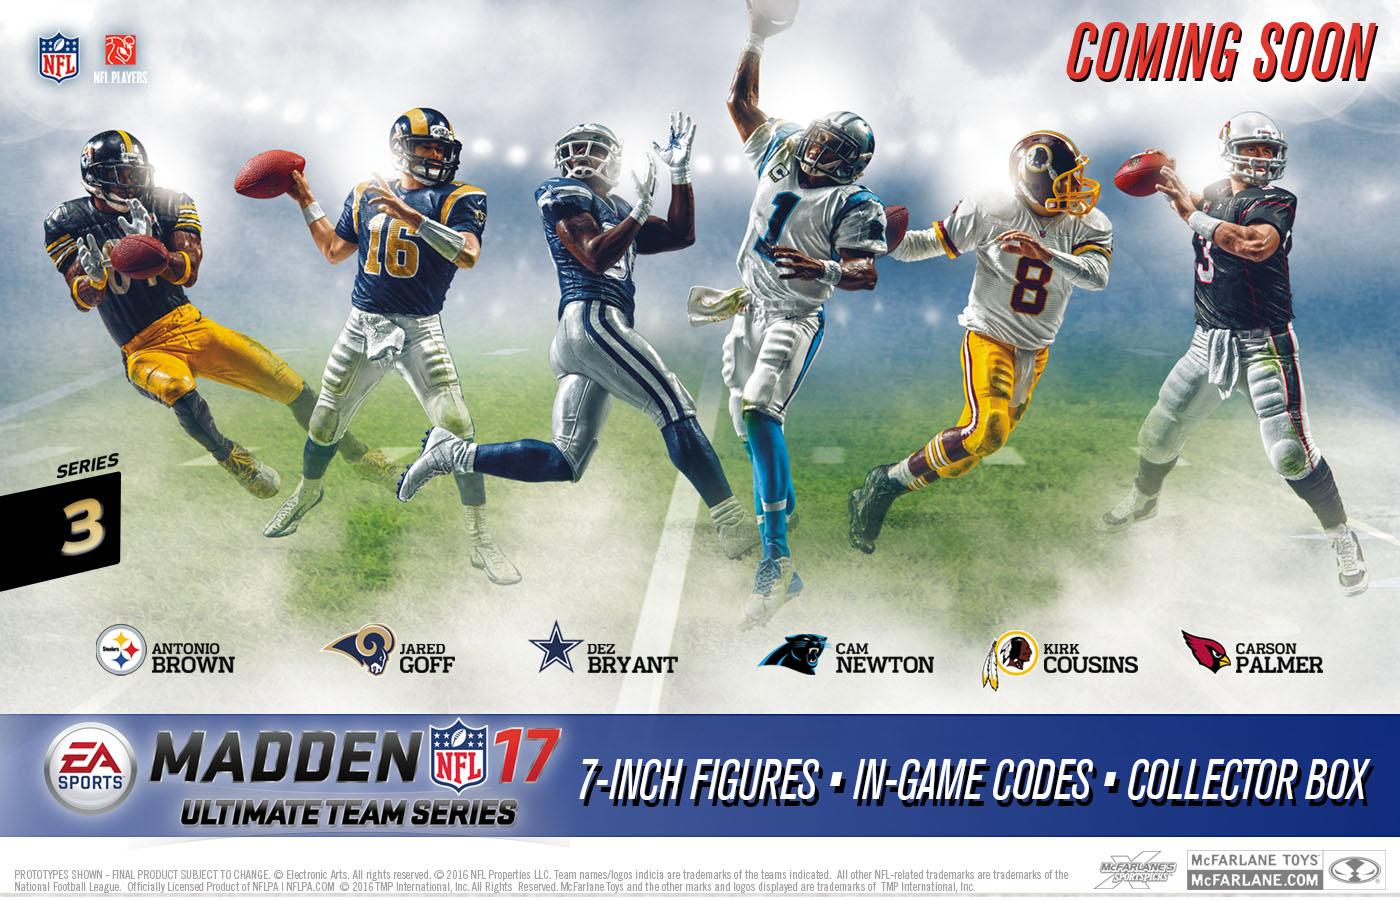 NFL MUT3 slider COMING SOON